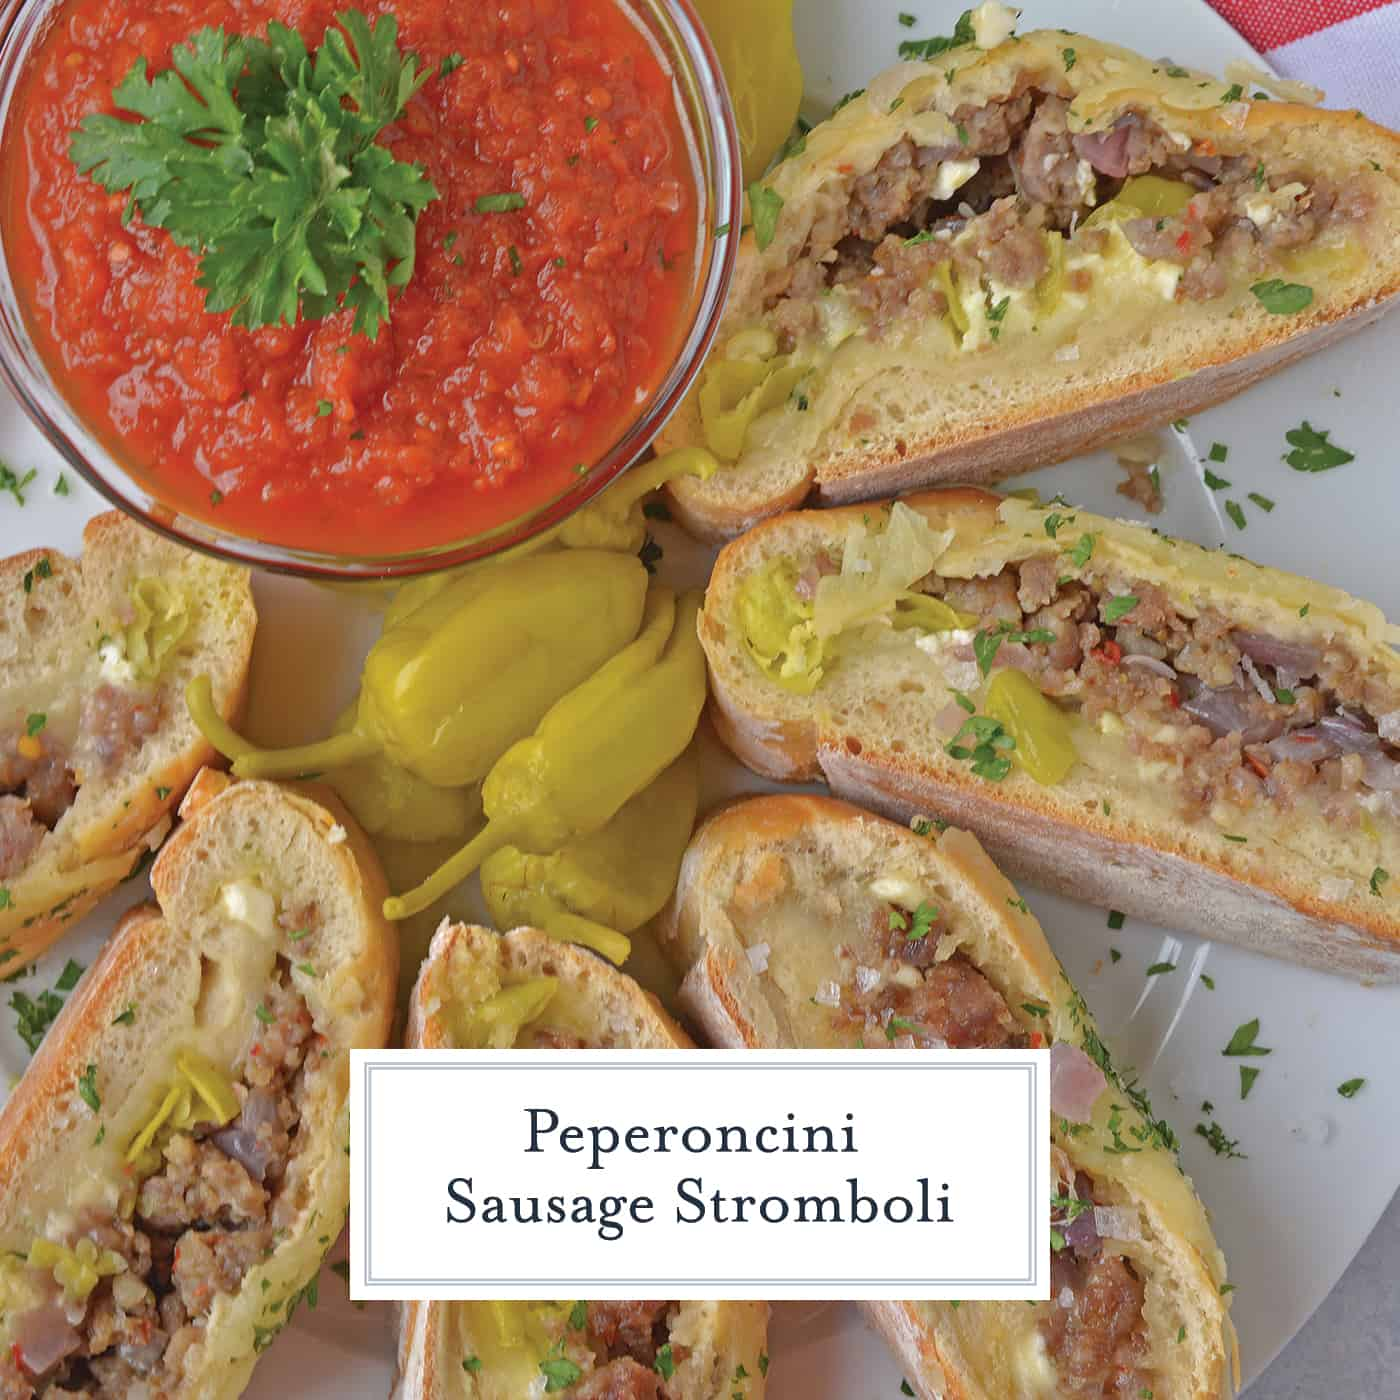 Peperoncini Sausage Stromboli is a crave-worthy, easy dinner recipe that your whole family will enjoy. Check out all the ways to make this dish your new family favorite. #strombolirecipes www.savoryexperiments.com